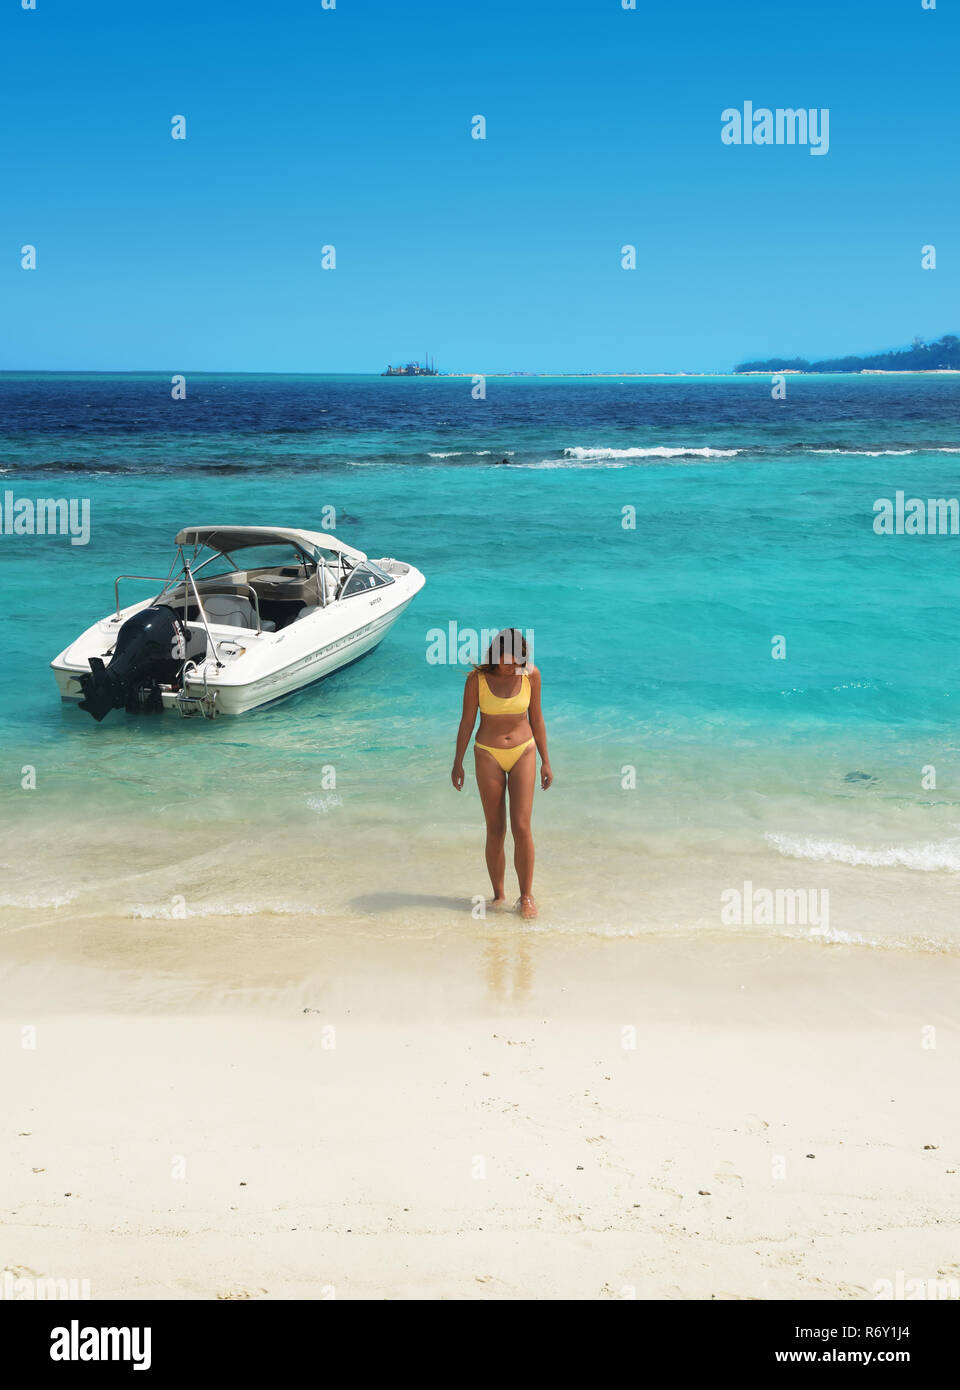 female on the beach and speedboat, luxury resort Maldives - Stock Image